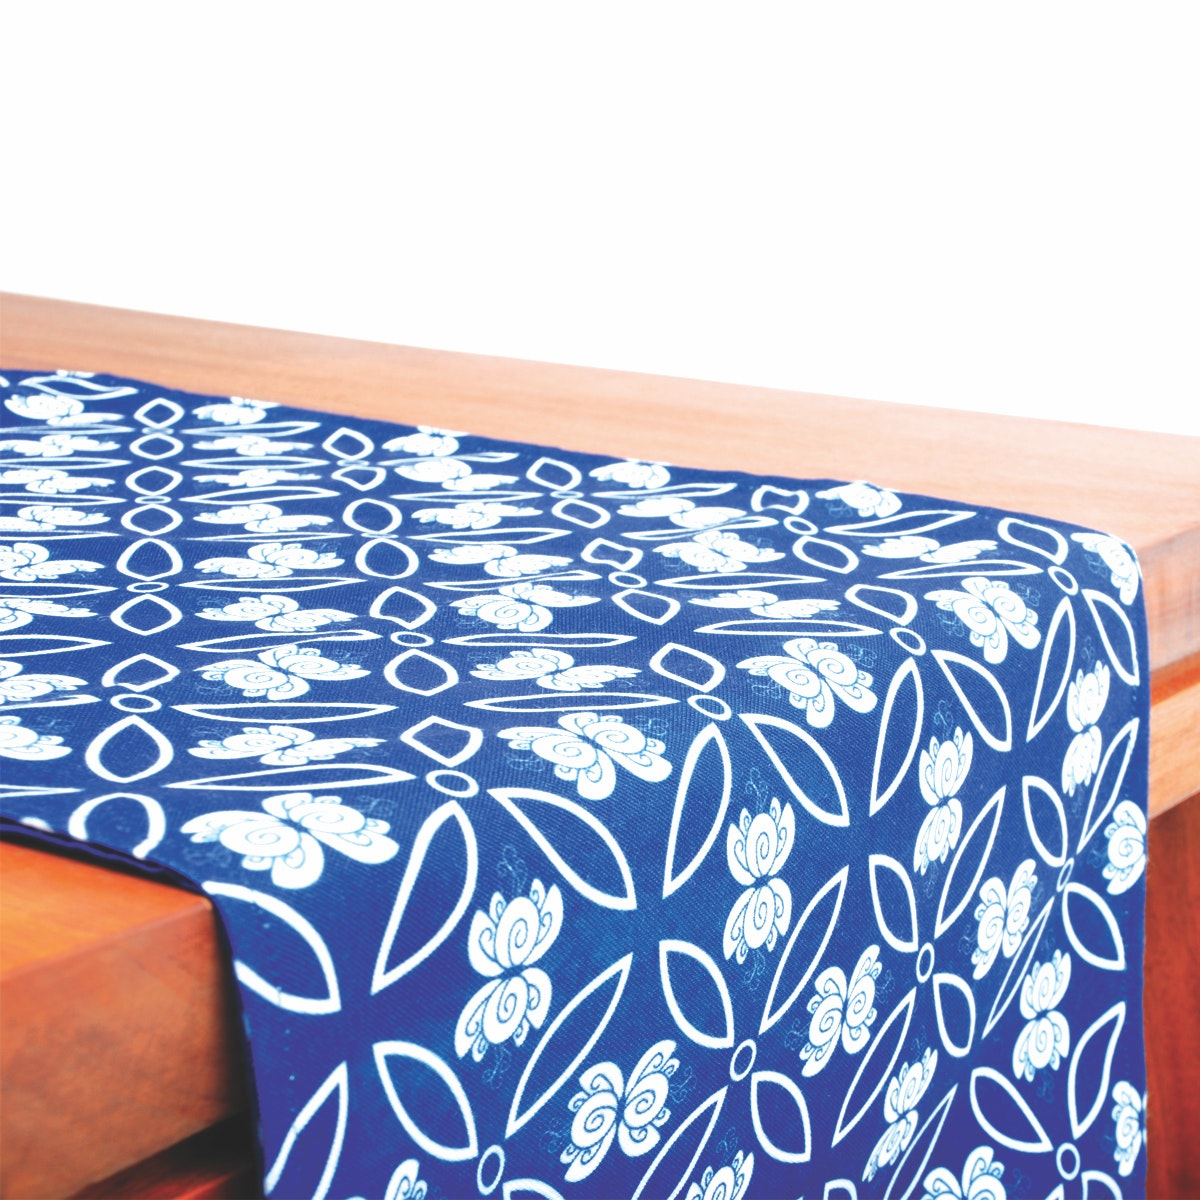 Glerry Home Decor Dew Blue Table Runner 150x30cm